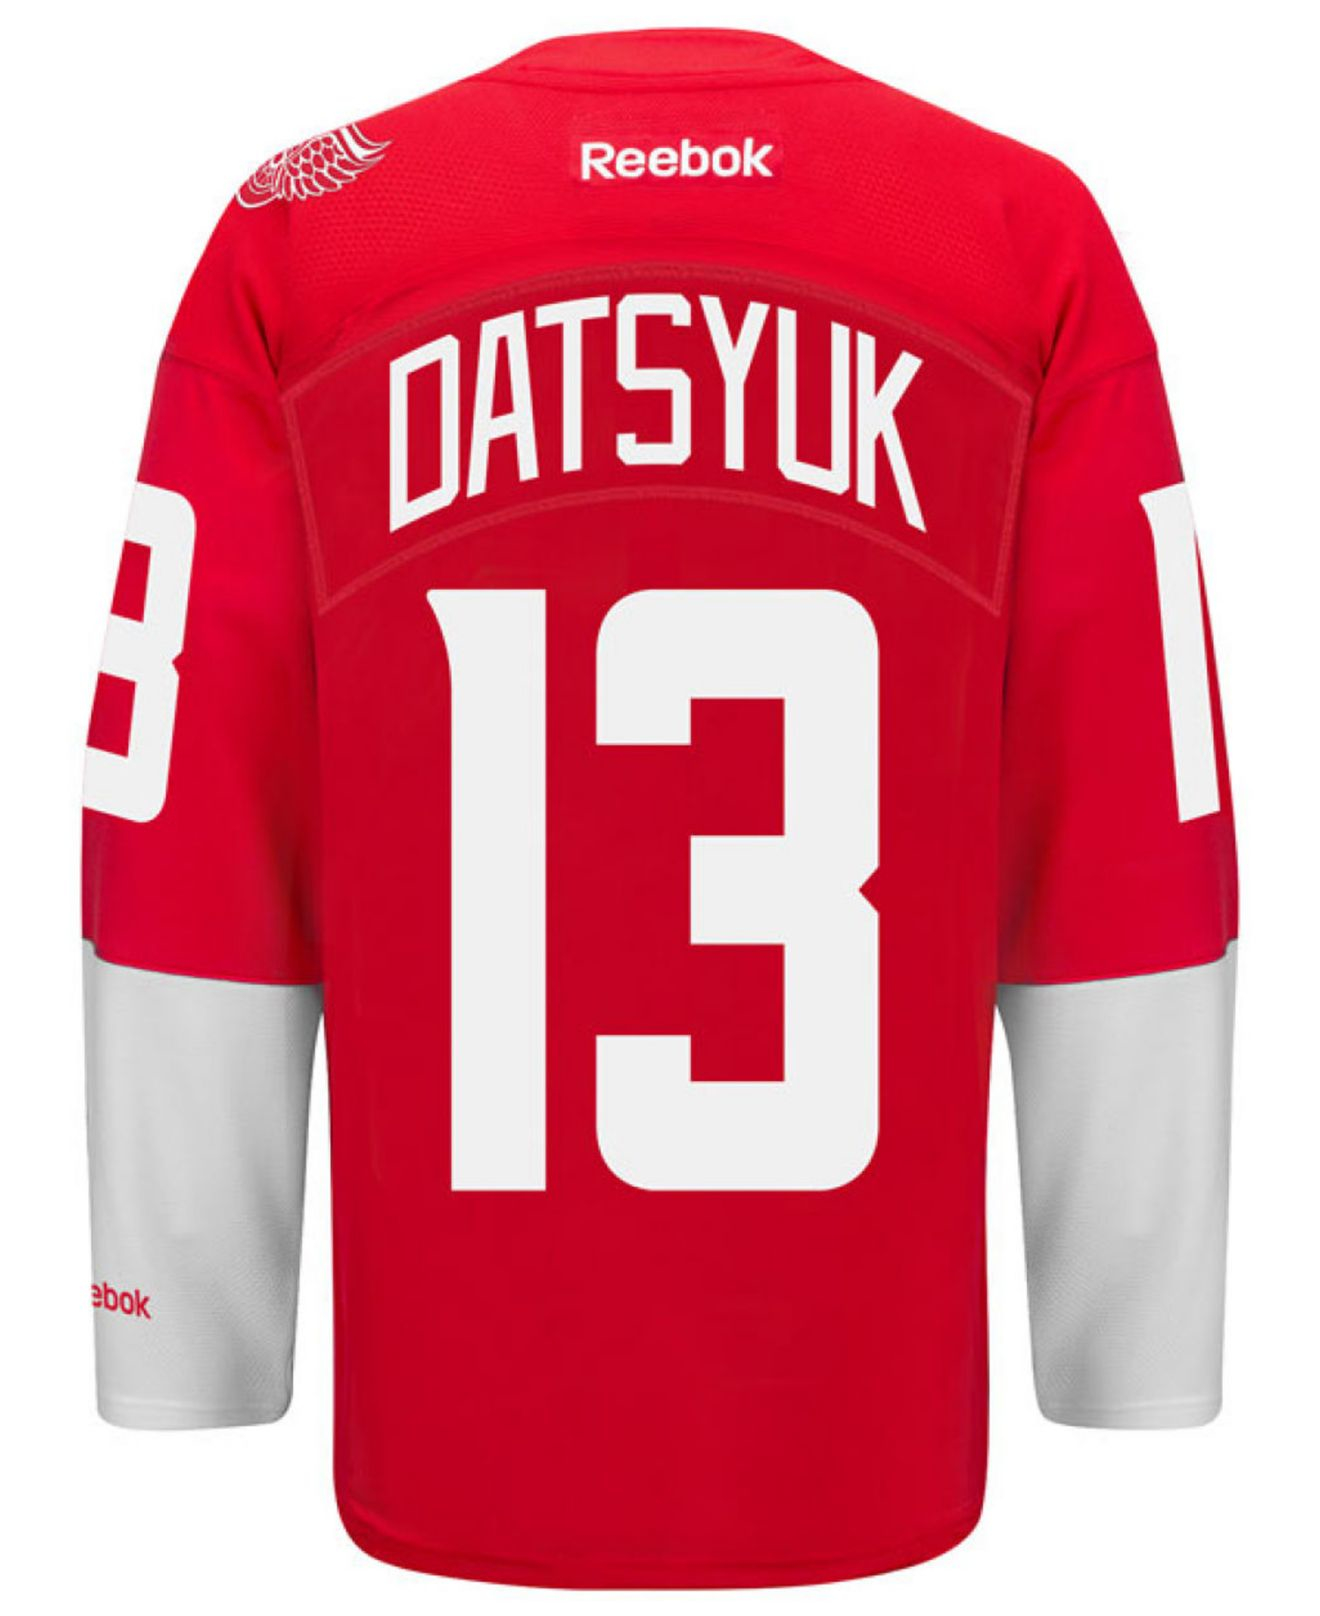 online store de007 9dfdc mens red wings stadium series jersey